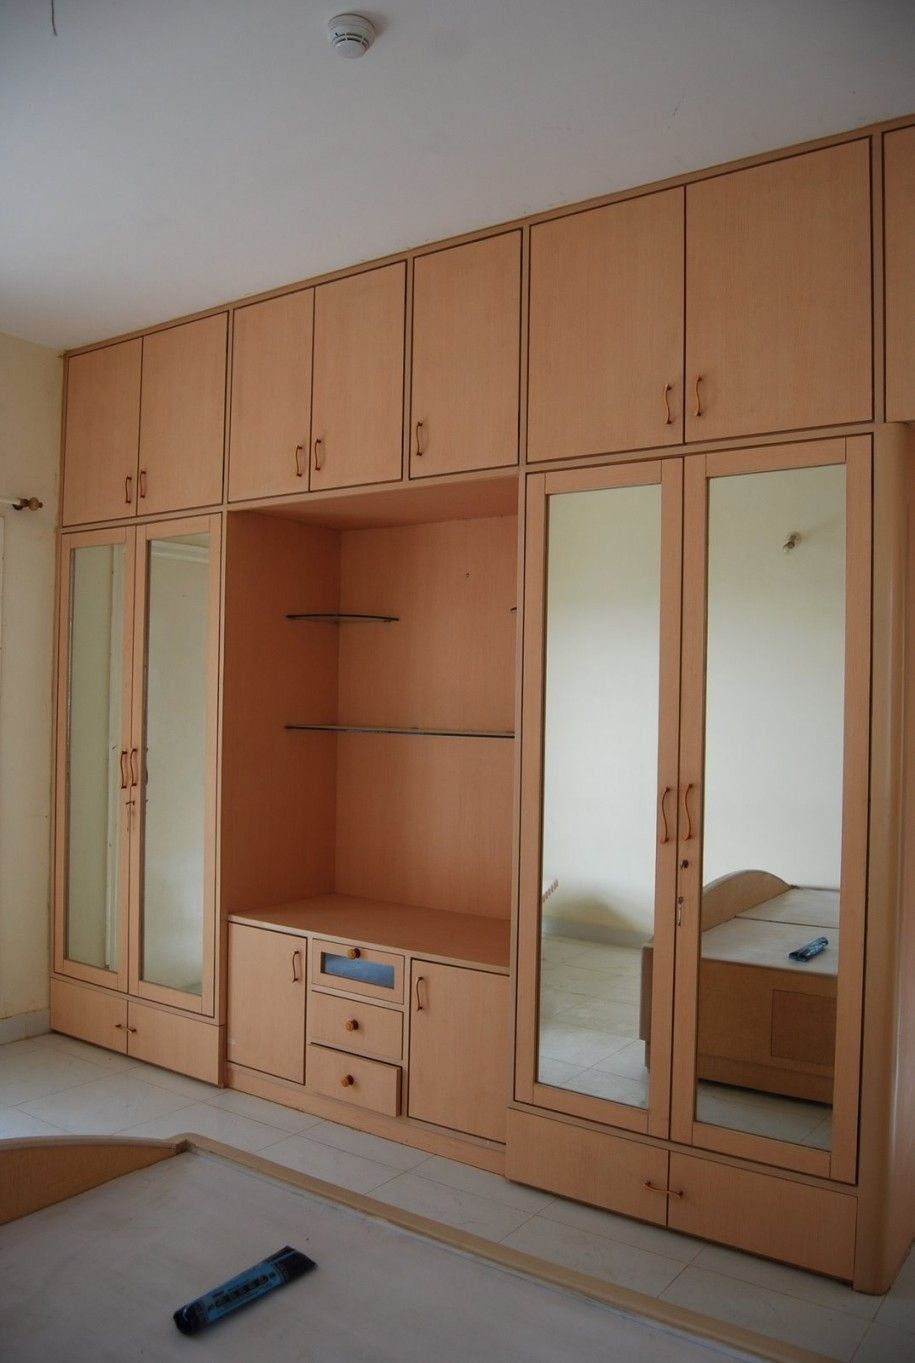 Bedroom Wall Cabinet With Mirror Cupboard Design Bedroom Closet Design Bedroom Cupboard Designs